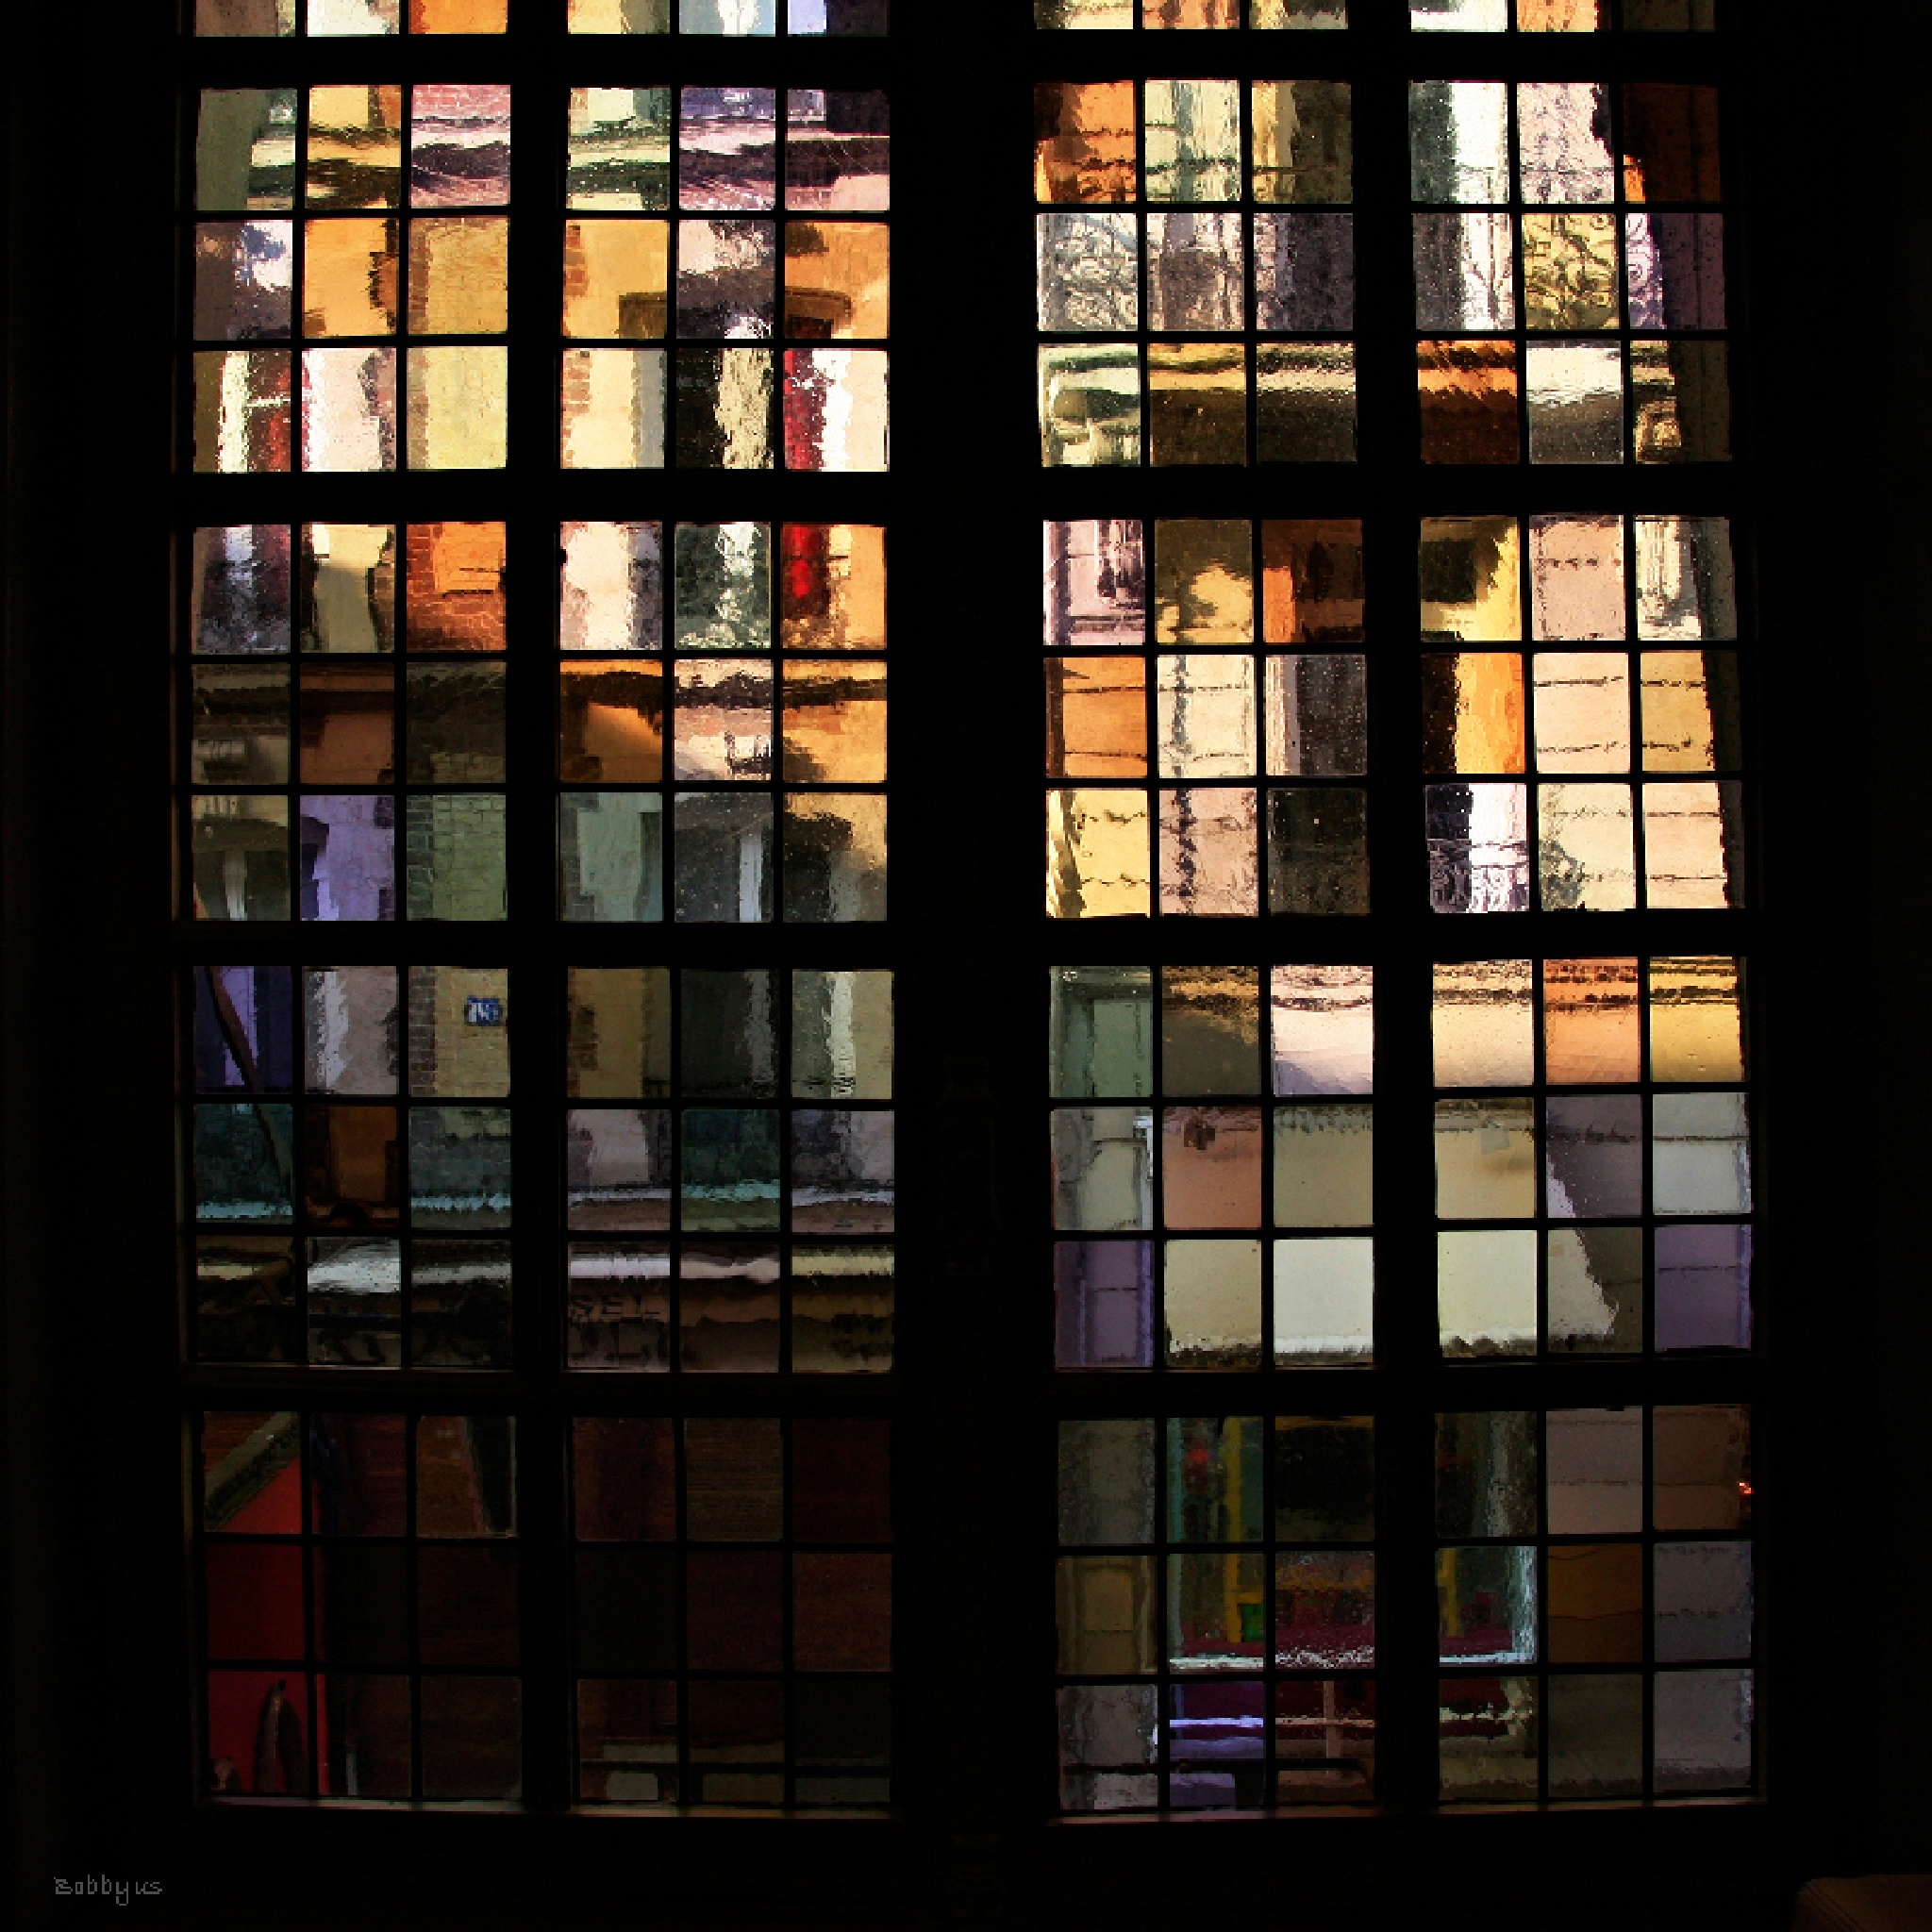 Stained glass window by Bobbyus